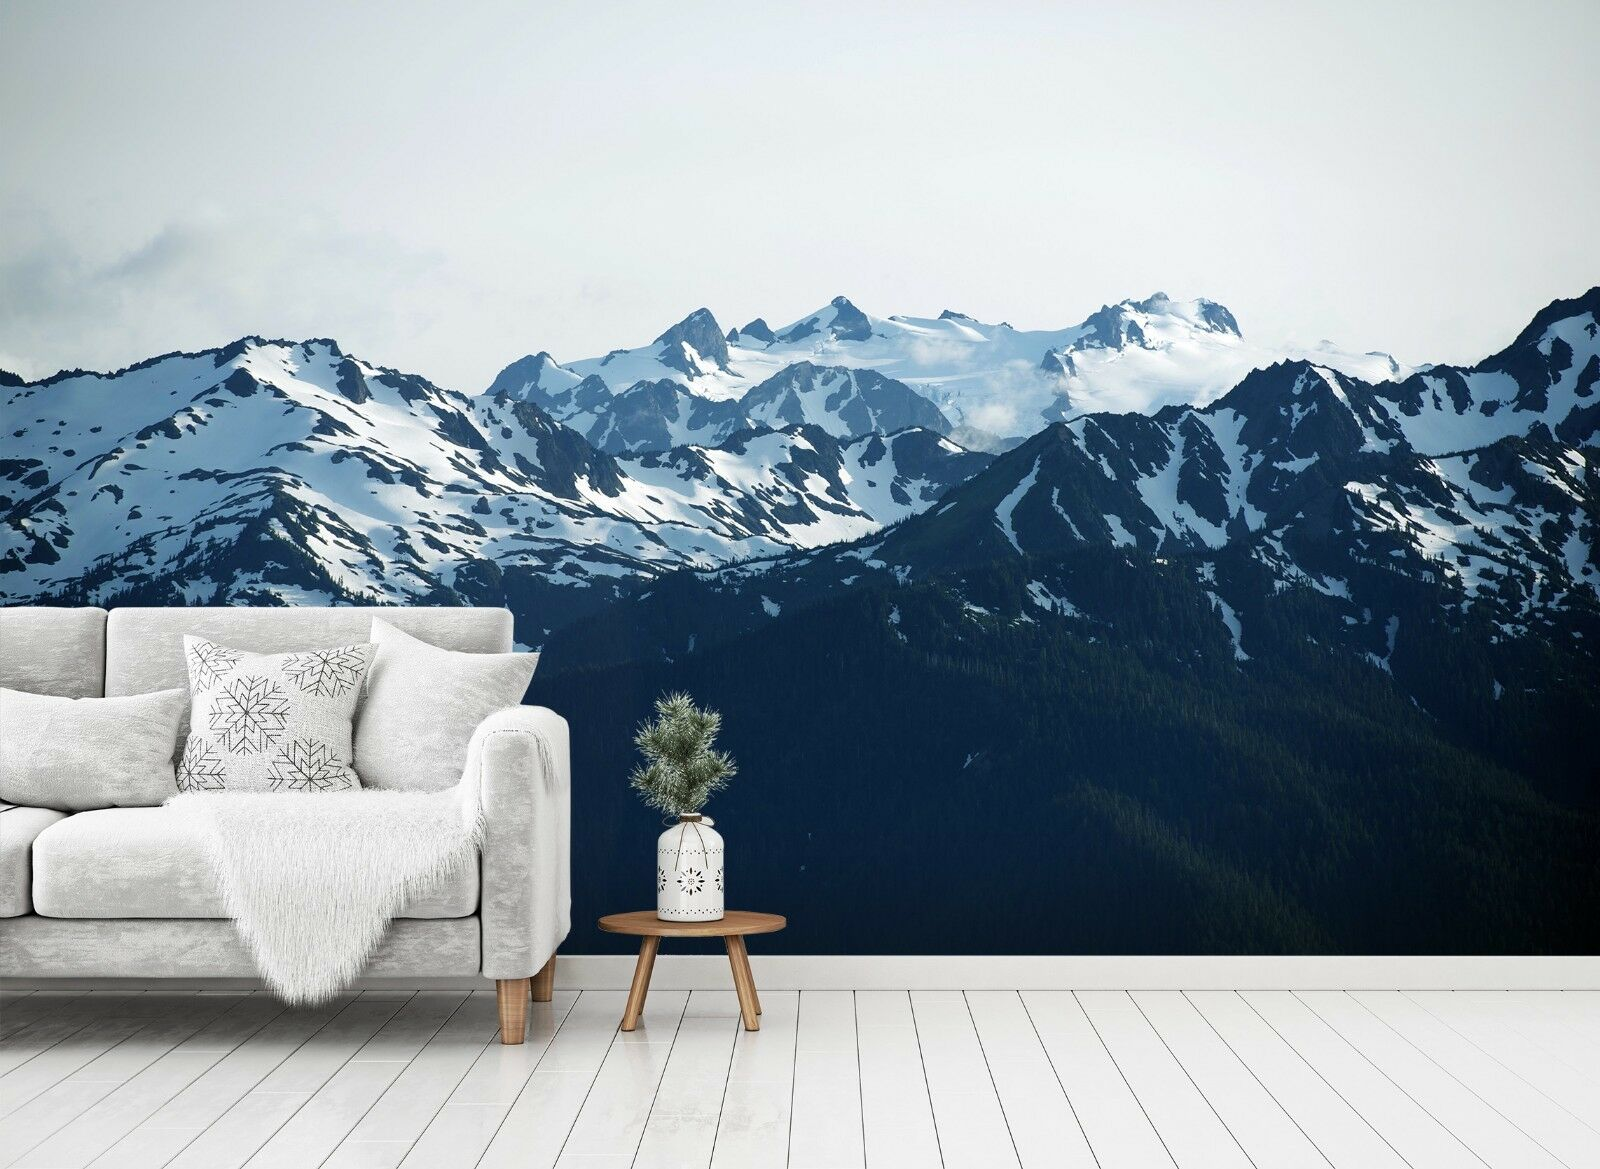 3D White Hill 7073 Wall Paper Print Wall Decal Deco Indoor Wall Murals US Summer